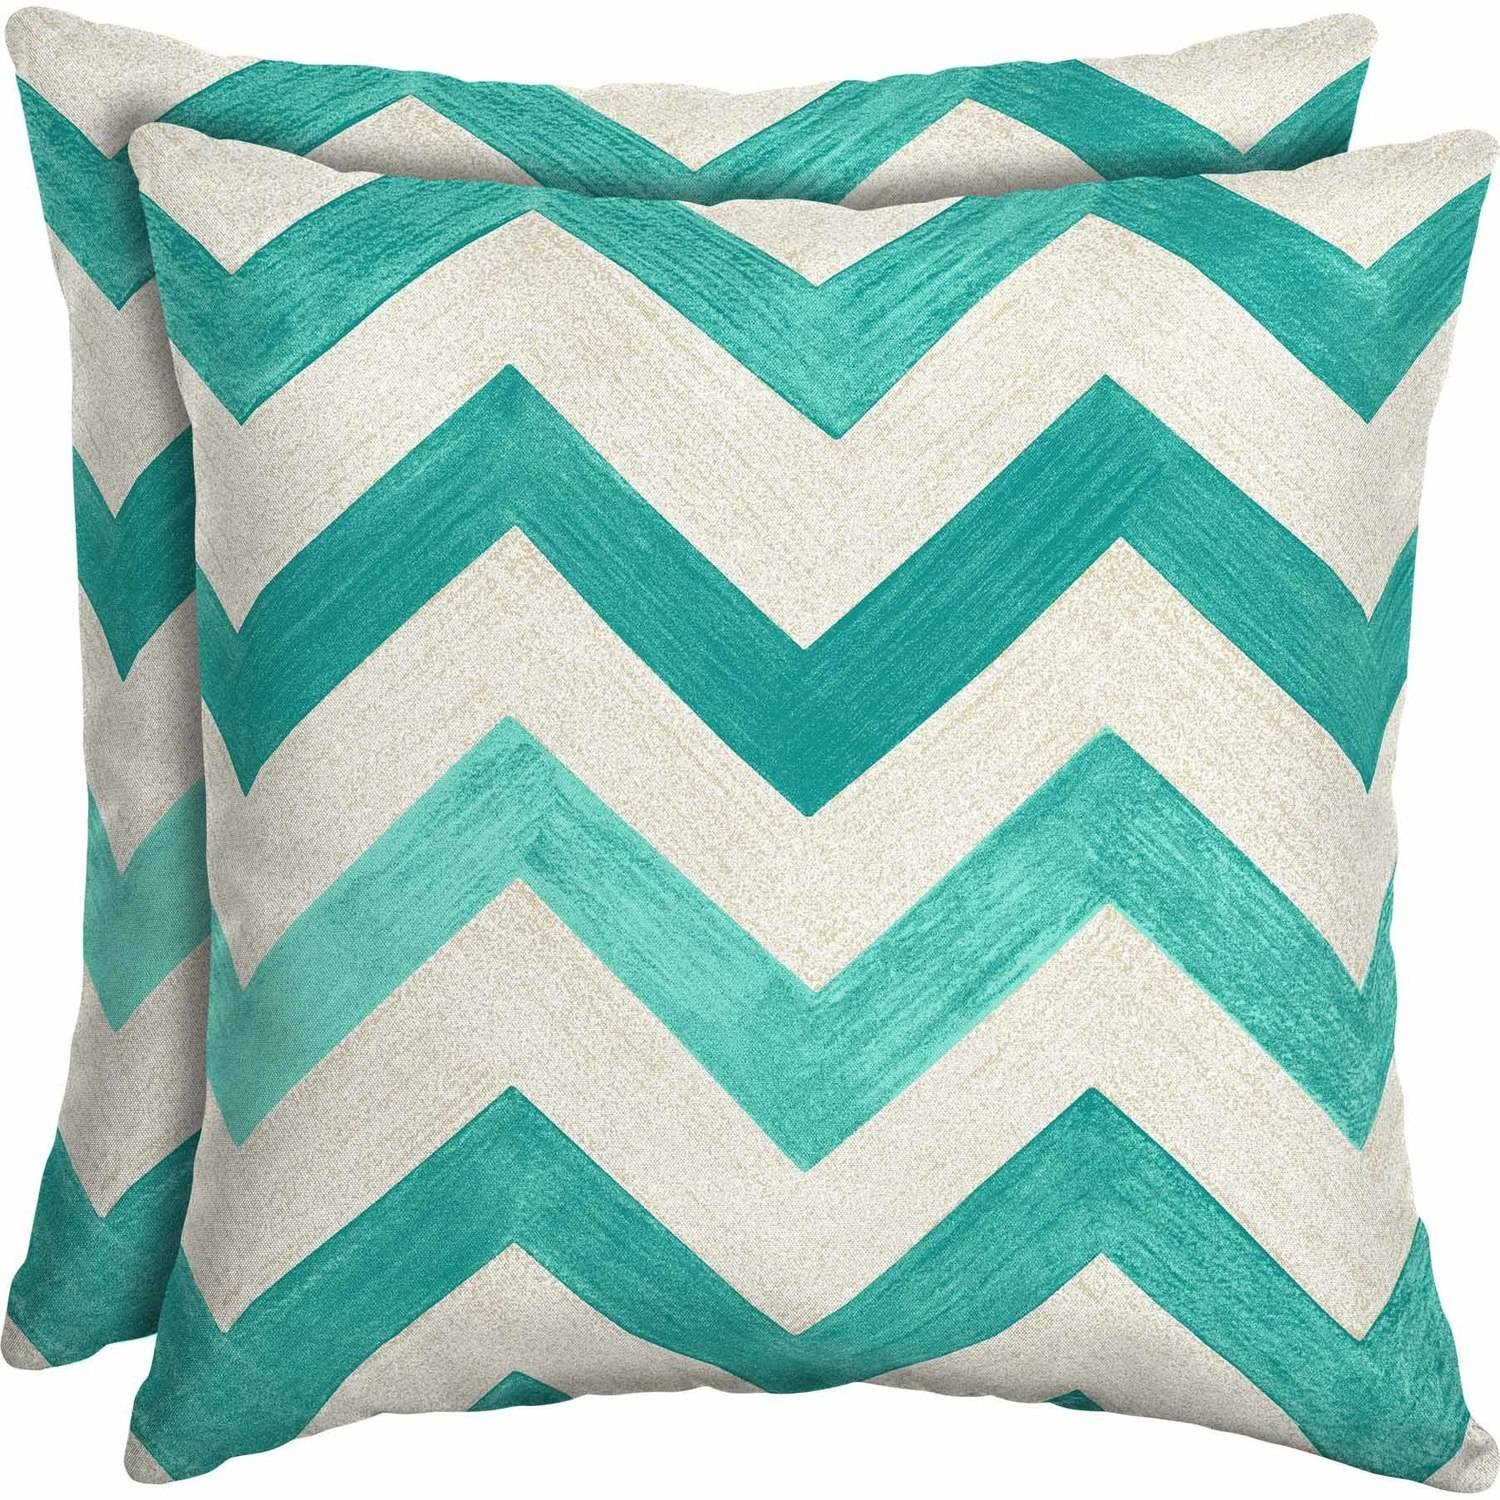 outdoor pillows mainstays outdoor patio 16 AODZKLP